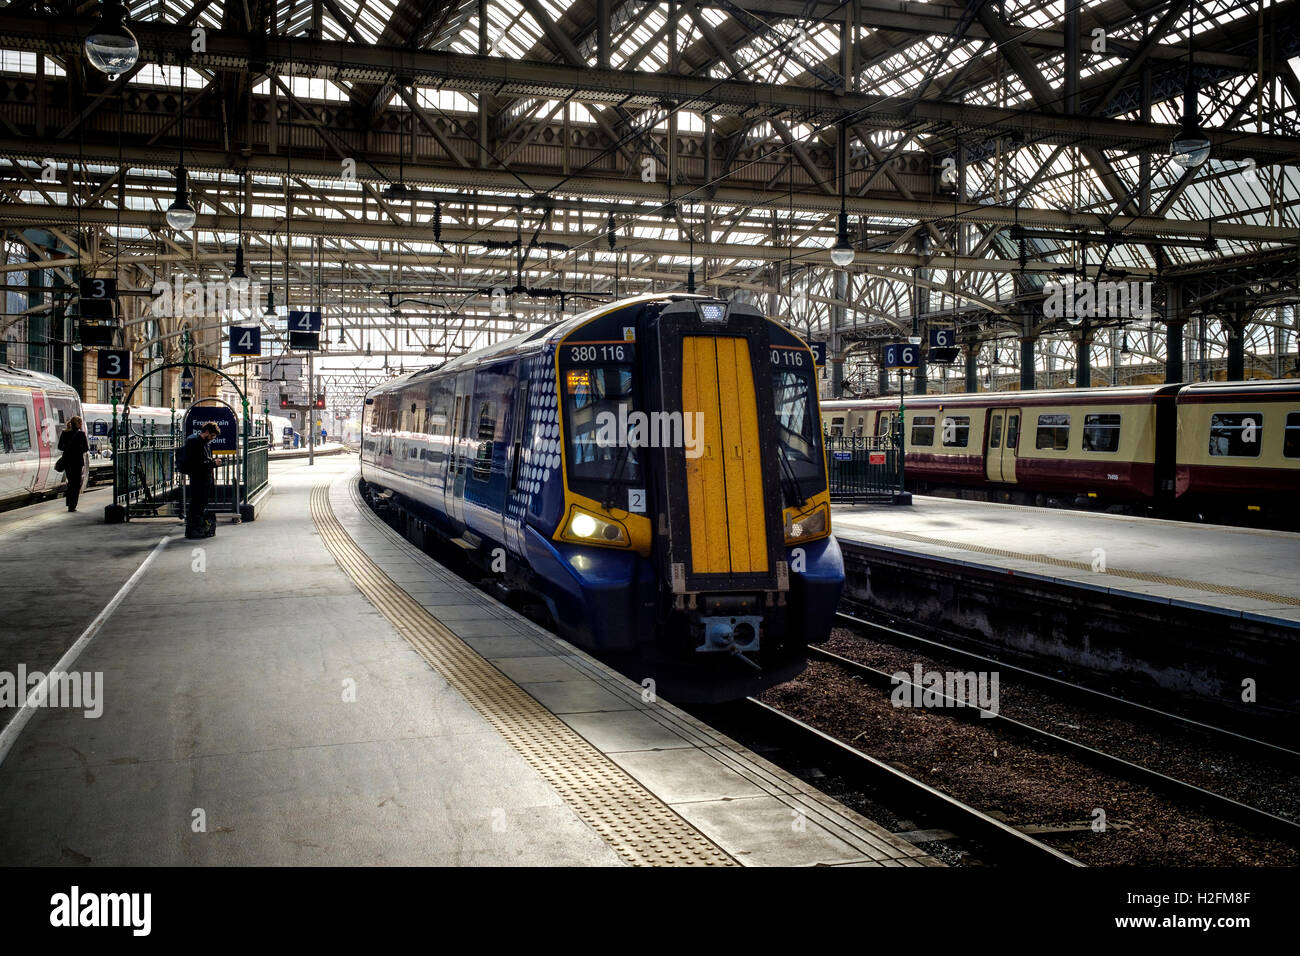 A local ScotRail commuter passenger train arriving at Central Station in Glasgow, Scotland - Stock Image